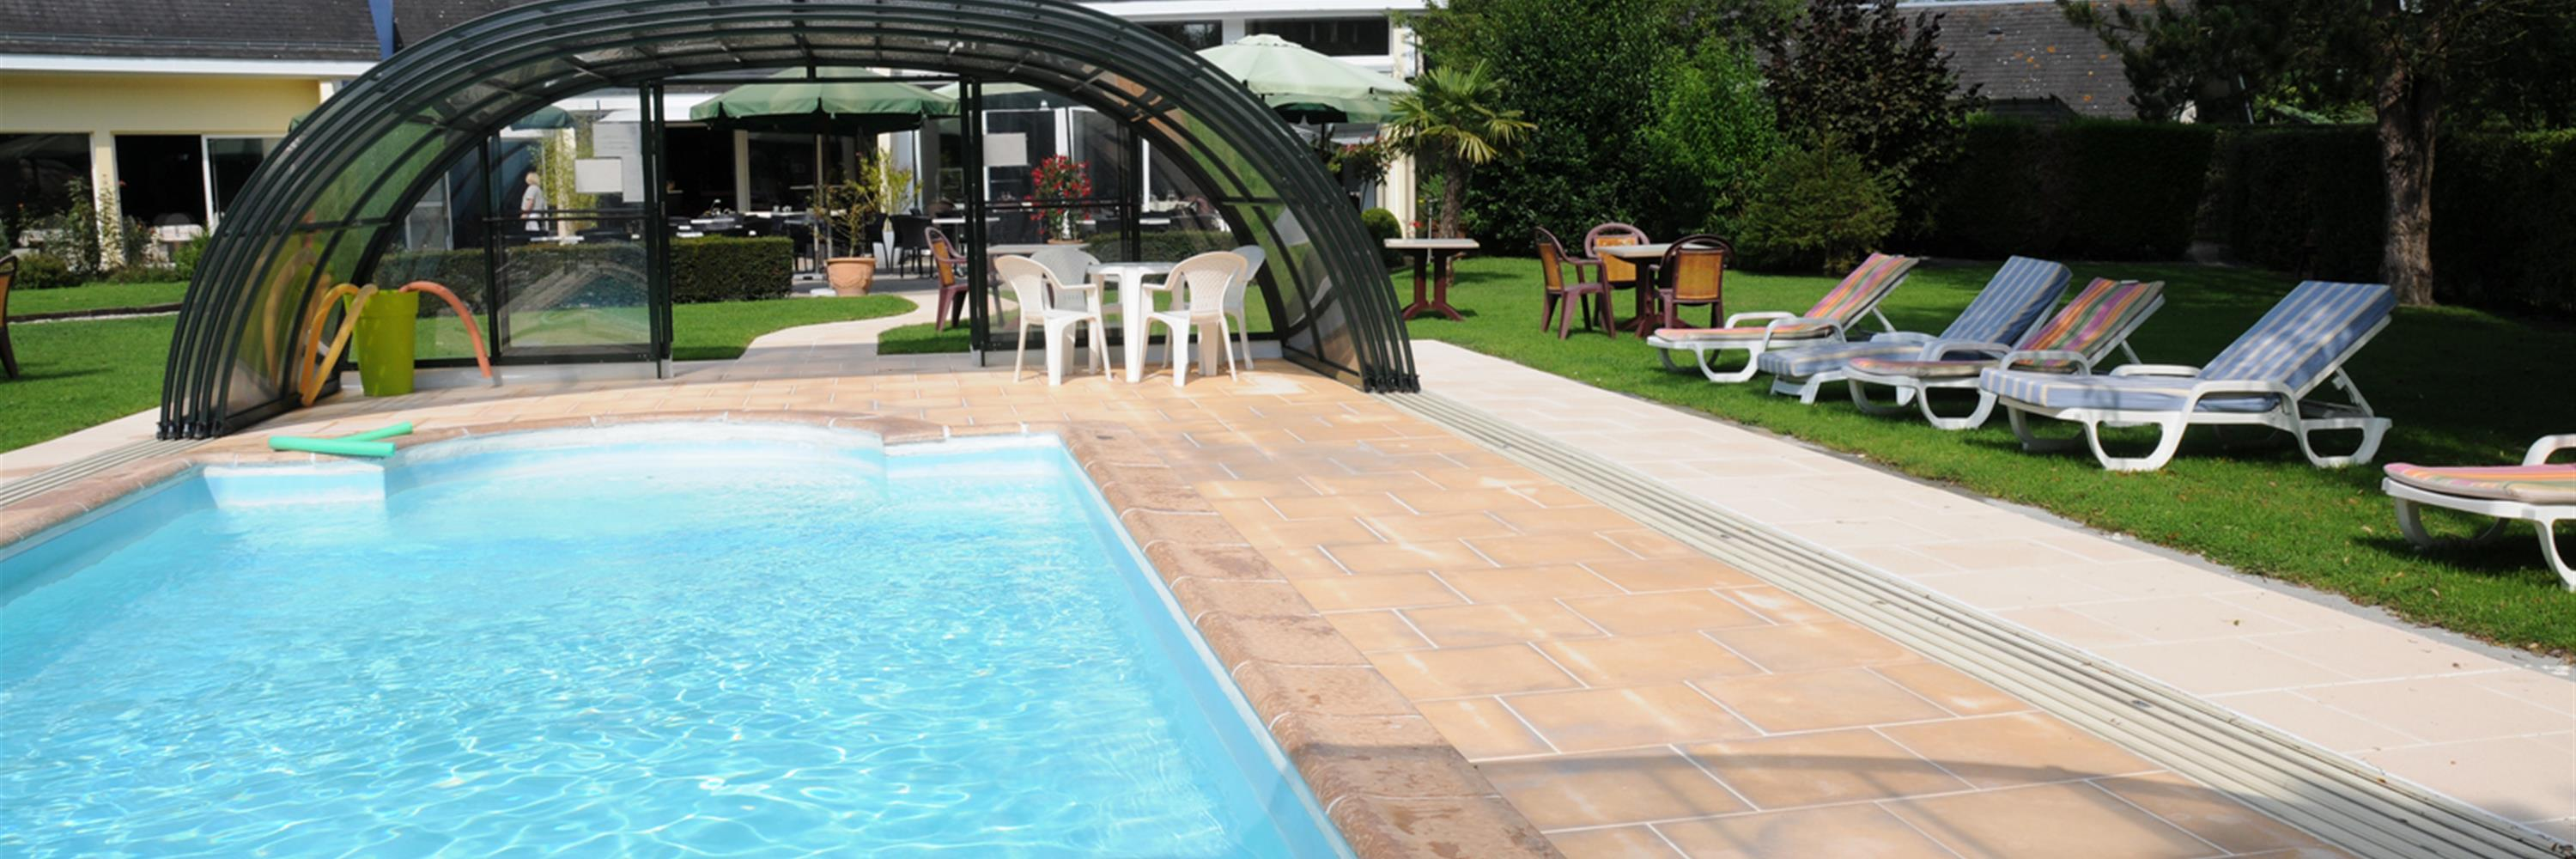 A Covered Swimming Pool Heated to 29°C in Cabourg - The leisure ...